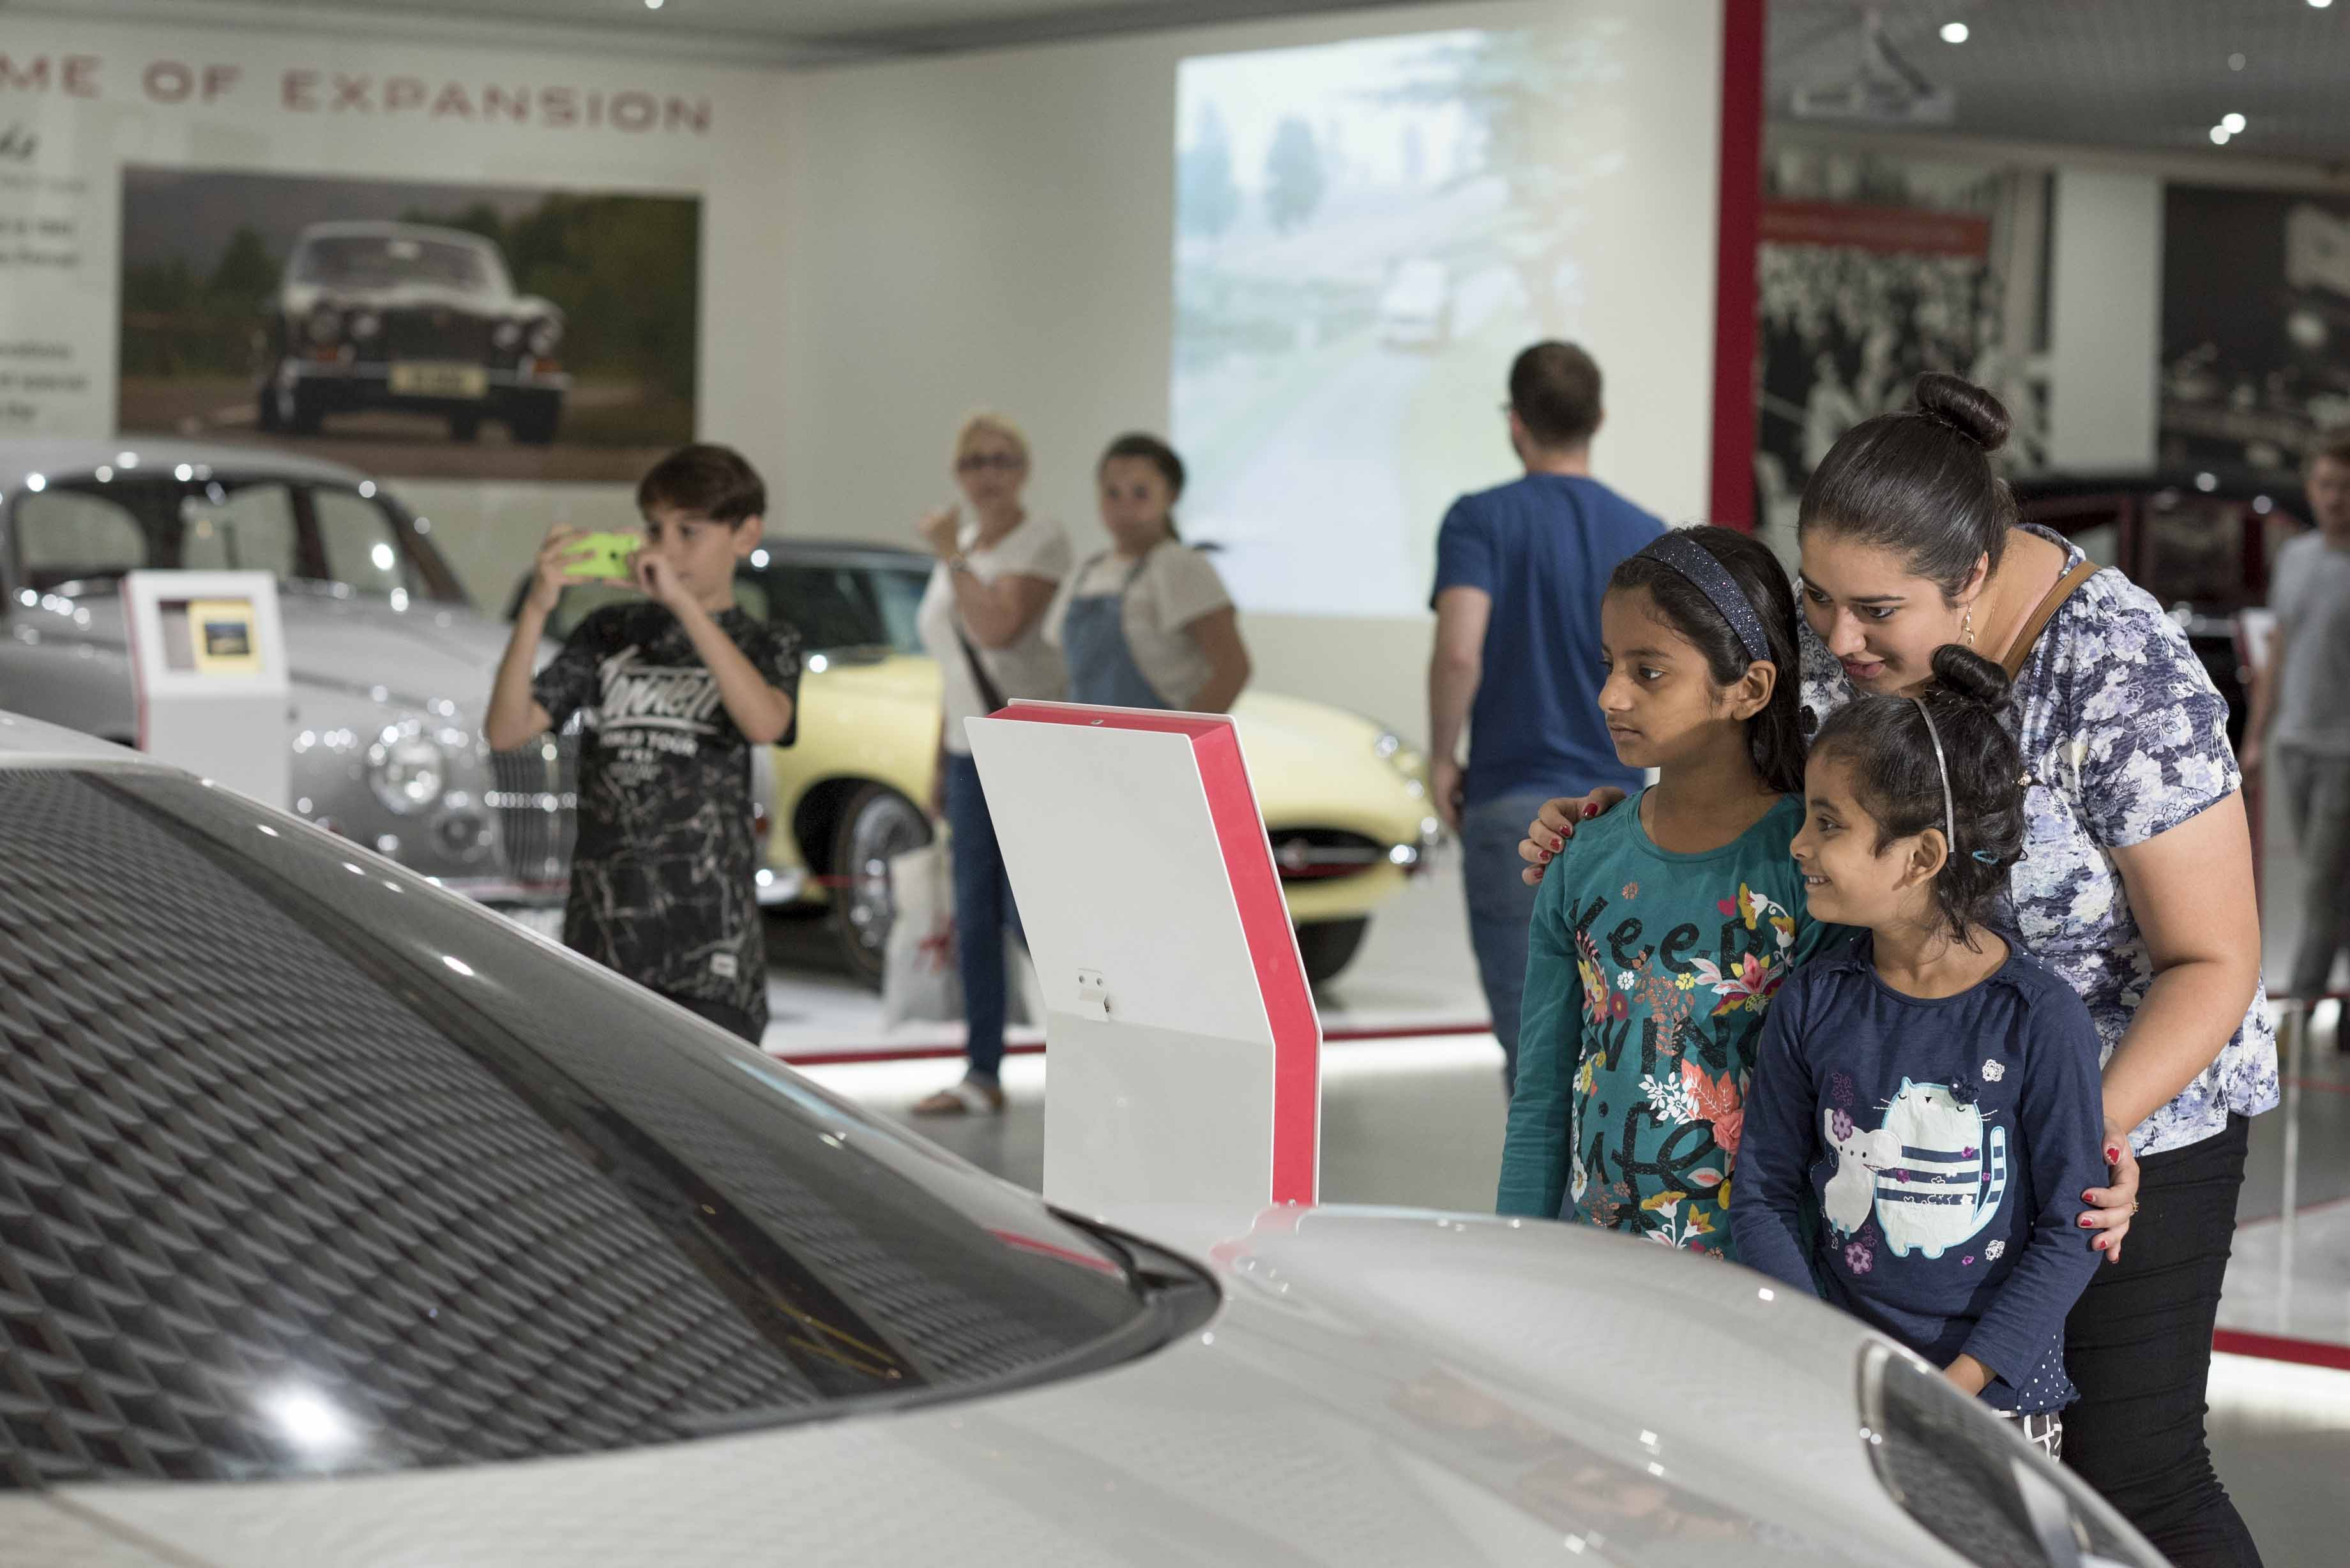 Families looking around the Jaguar gallery